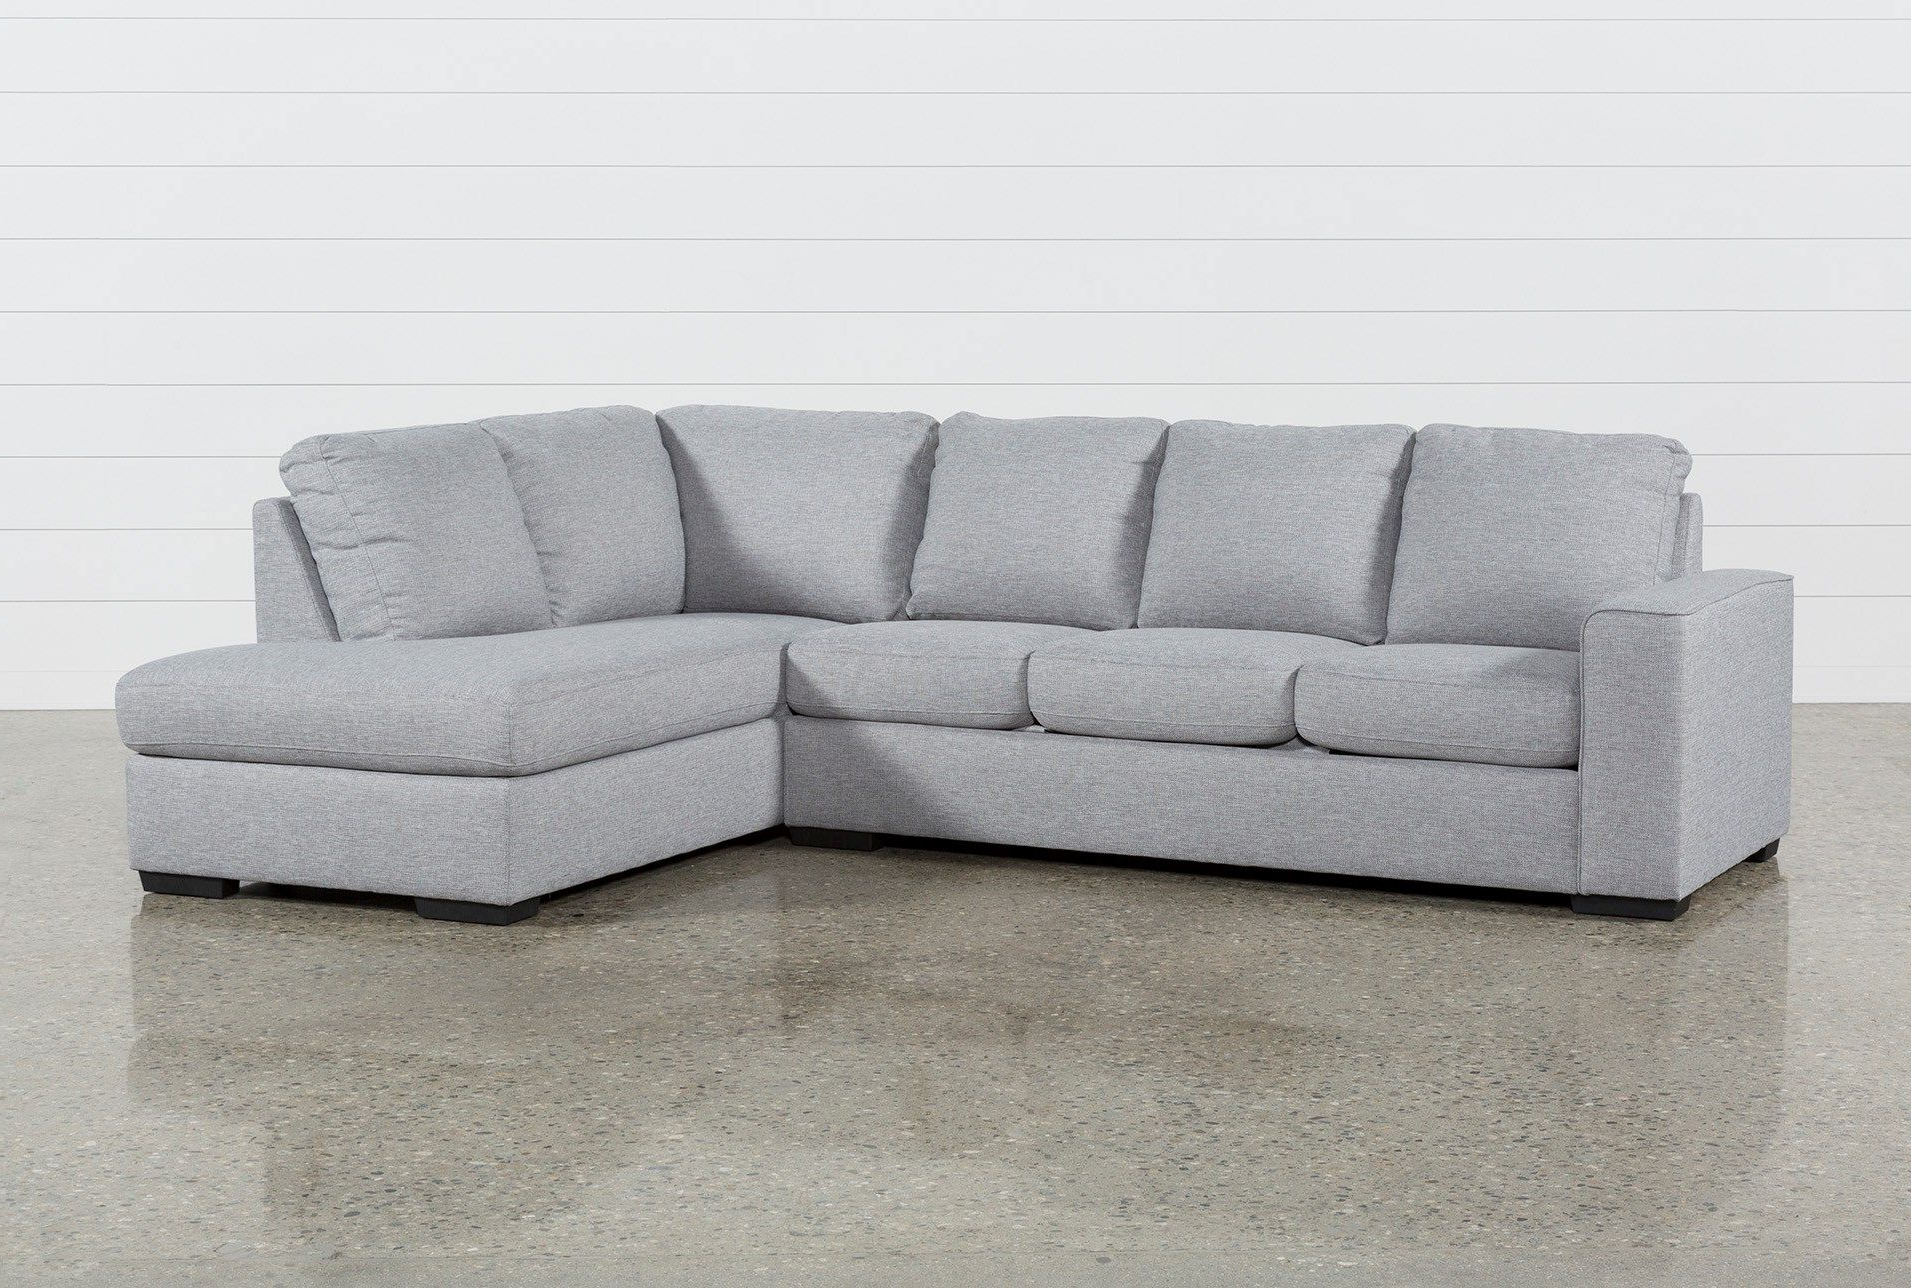 Lucy Dark Grey 2 Piece Sleeper Sectionals With Laf Chaise Pertaining To Current Lucy Grey 2 Piece Sleeper Sectional W/raf Chaise In 2018 (Gallery 2 of 20)